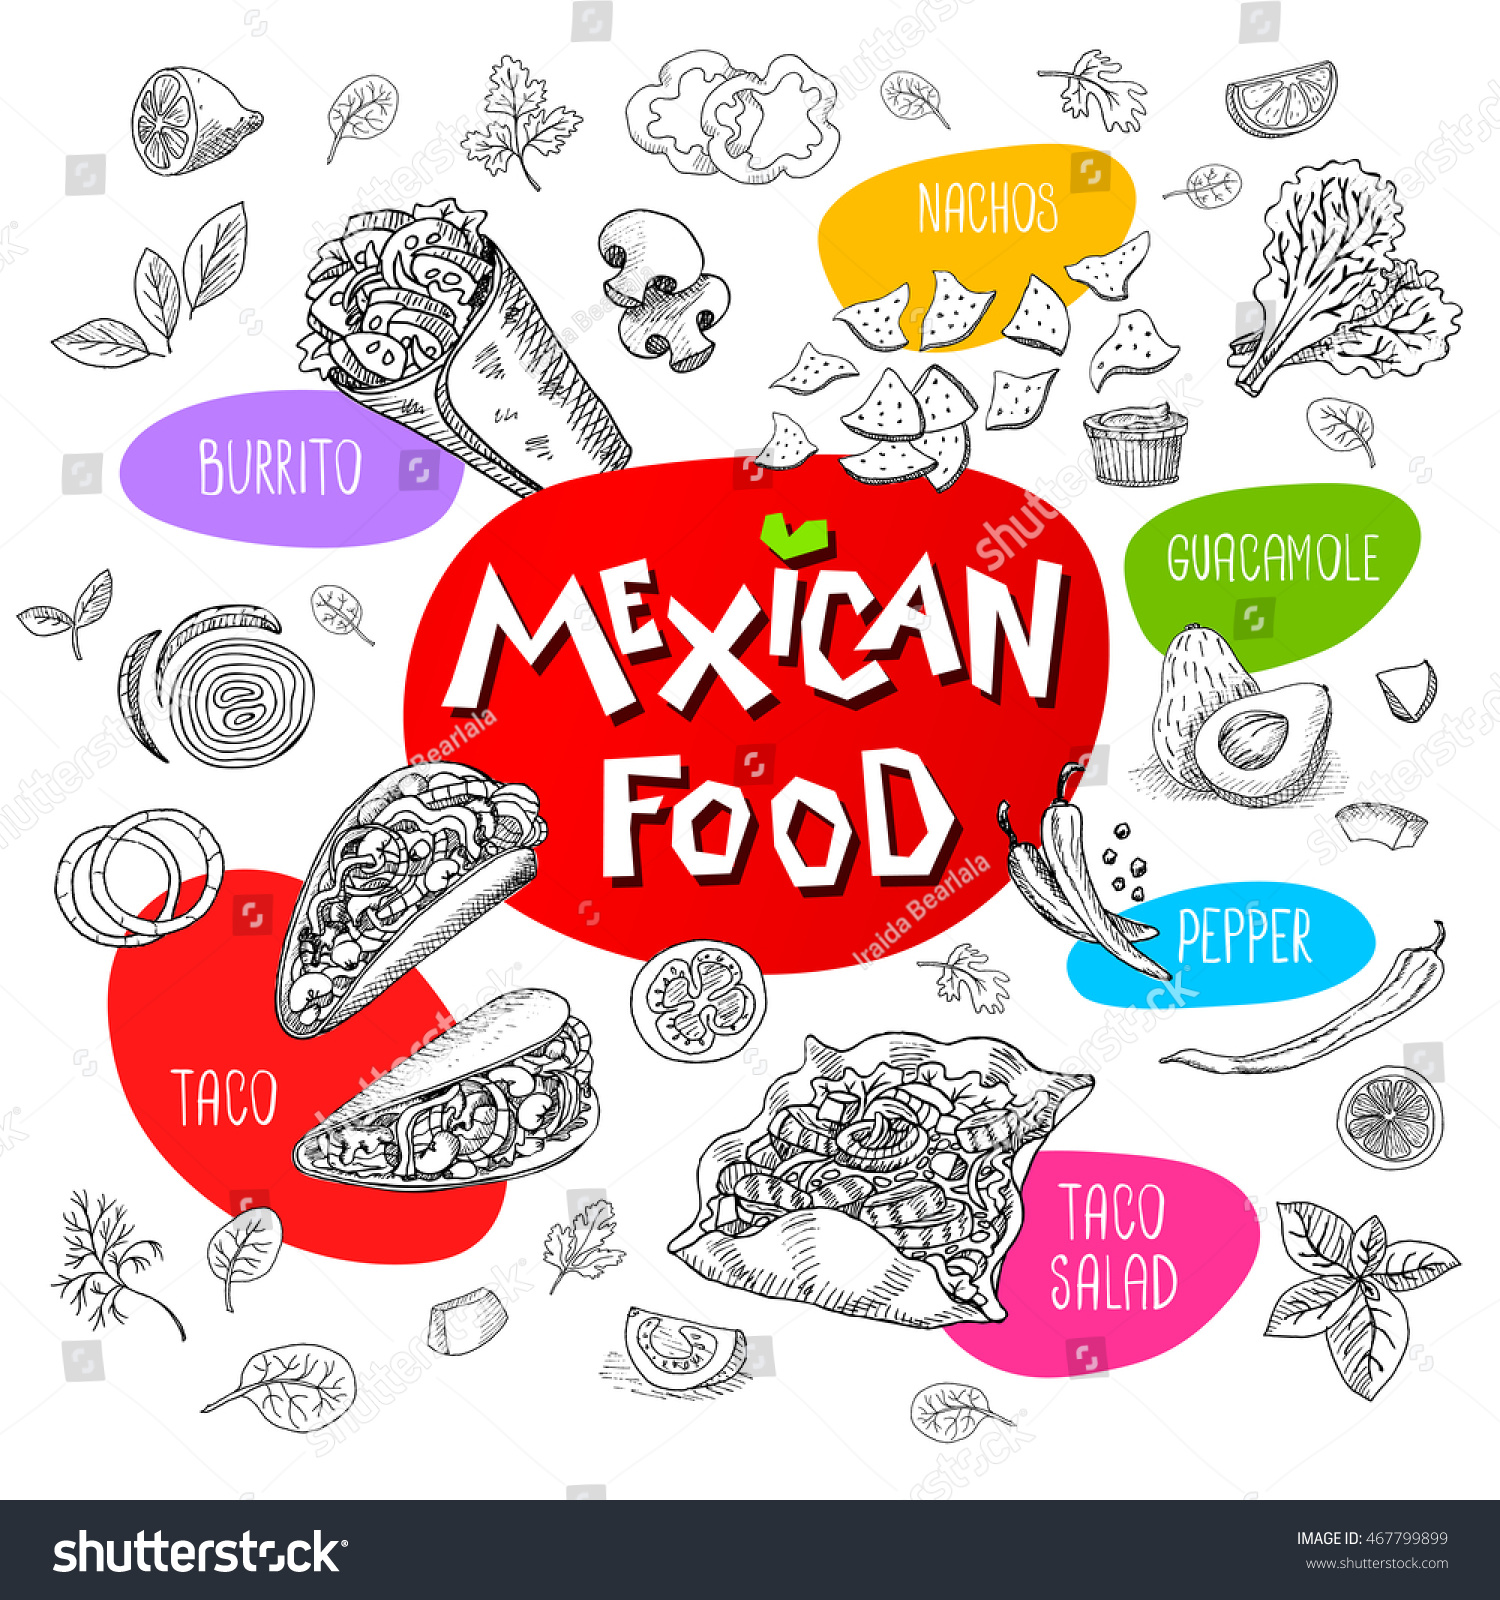 Medical abbreviations taco - Set Of Stickers In Sketch Style Food And Spices Old Paper Textured Background